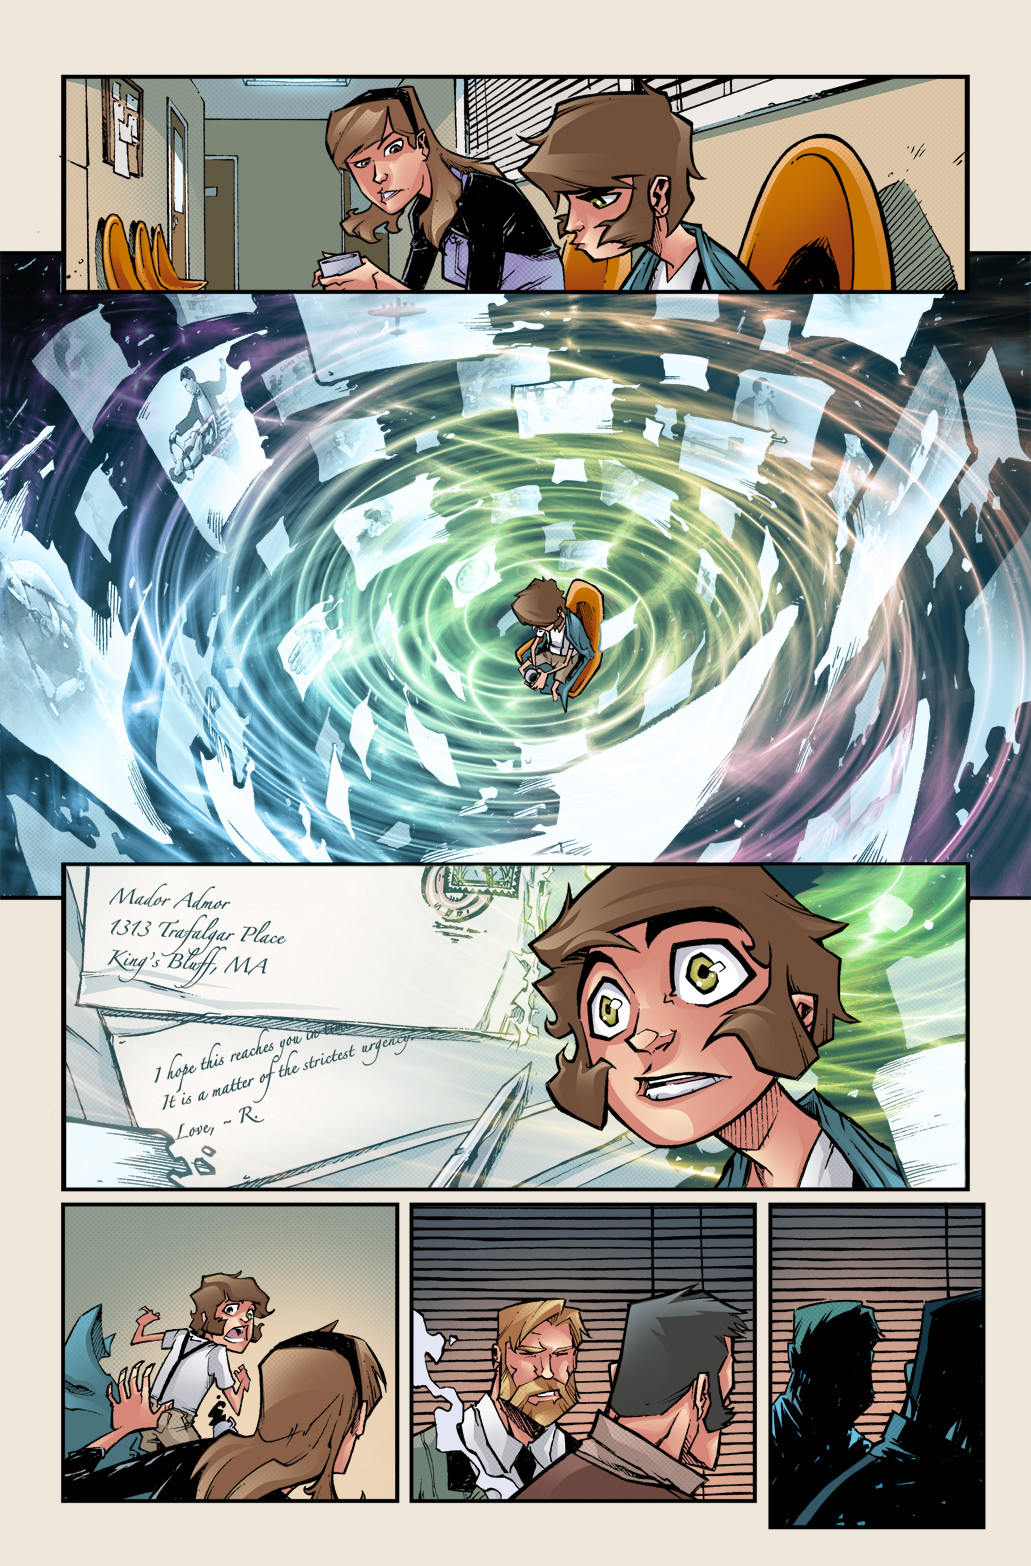 GONERS - #1, page22